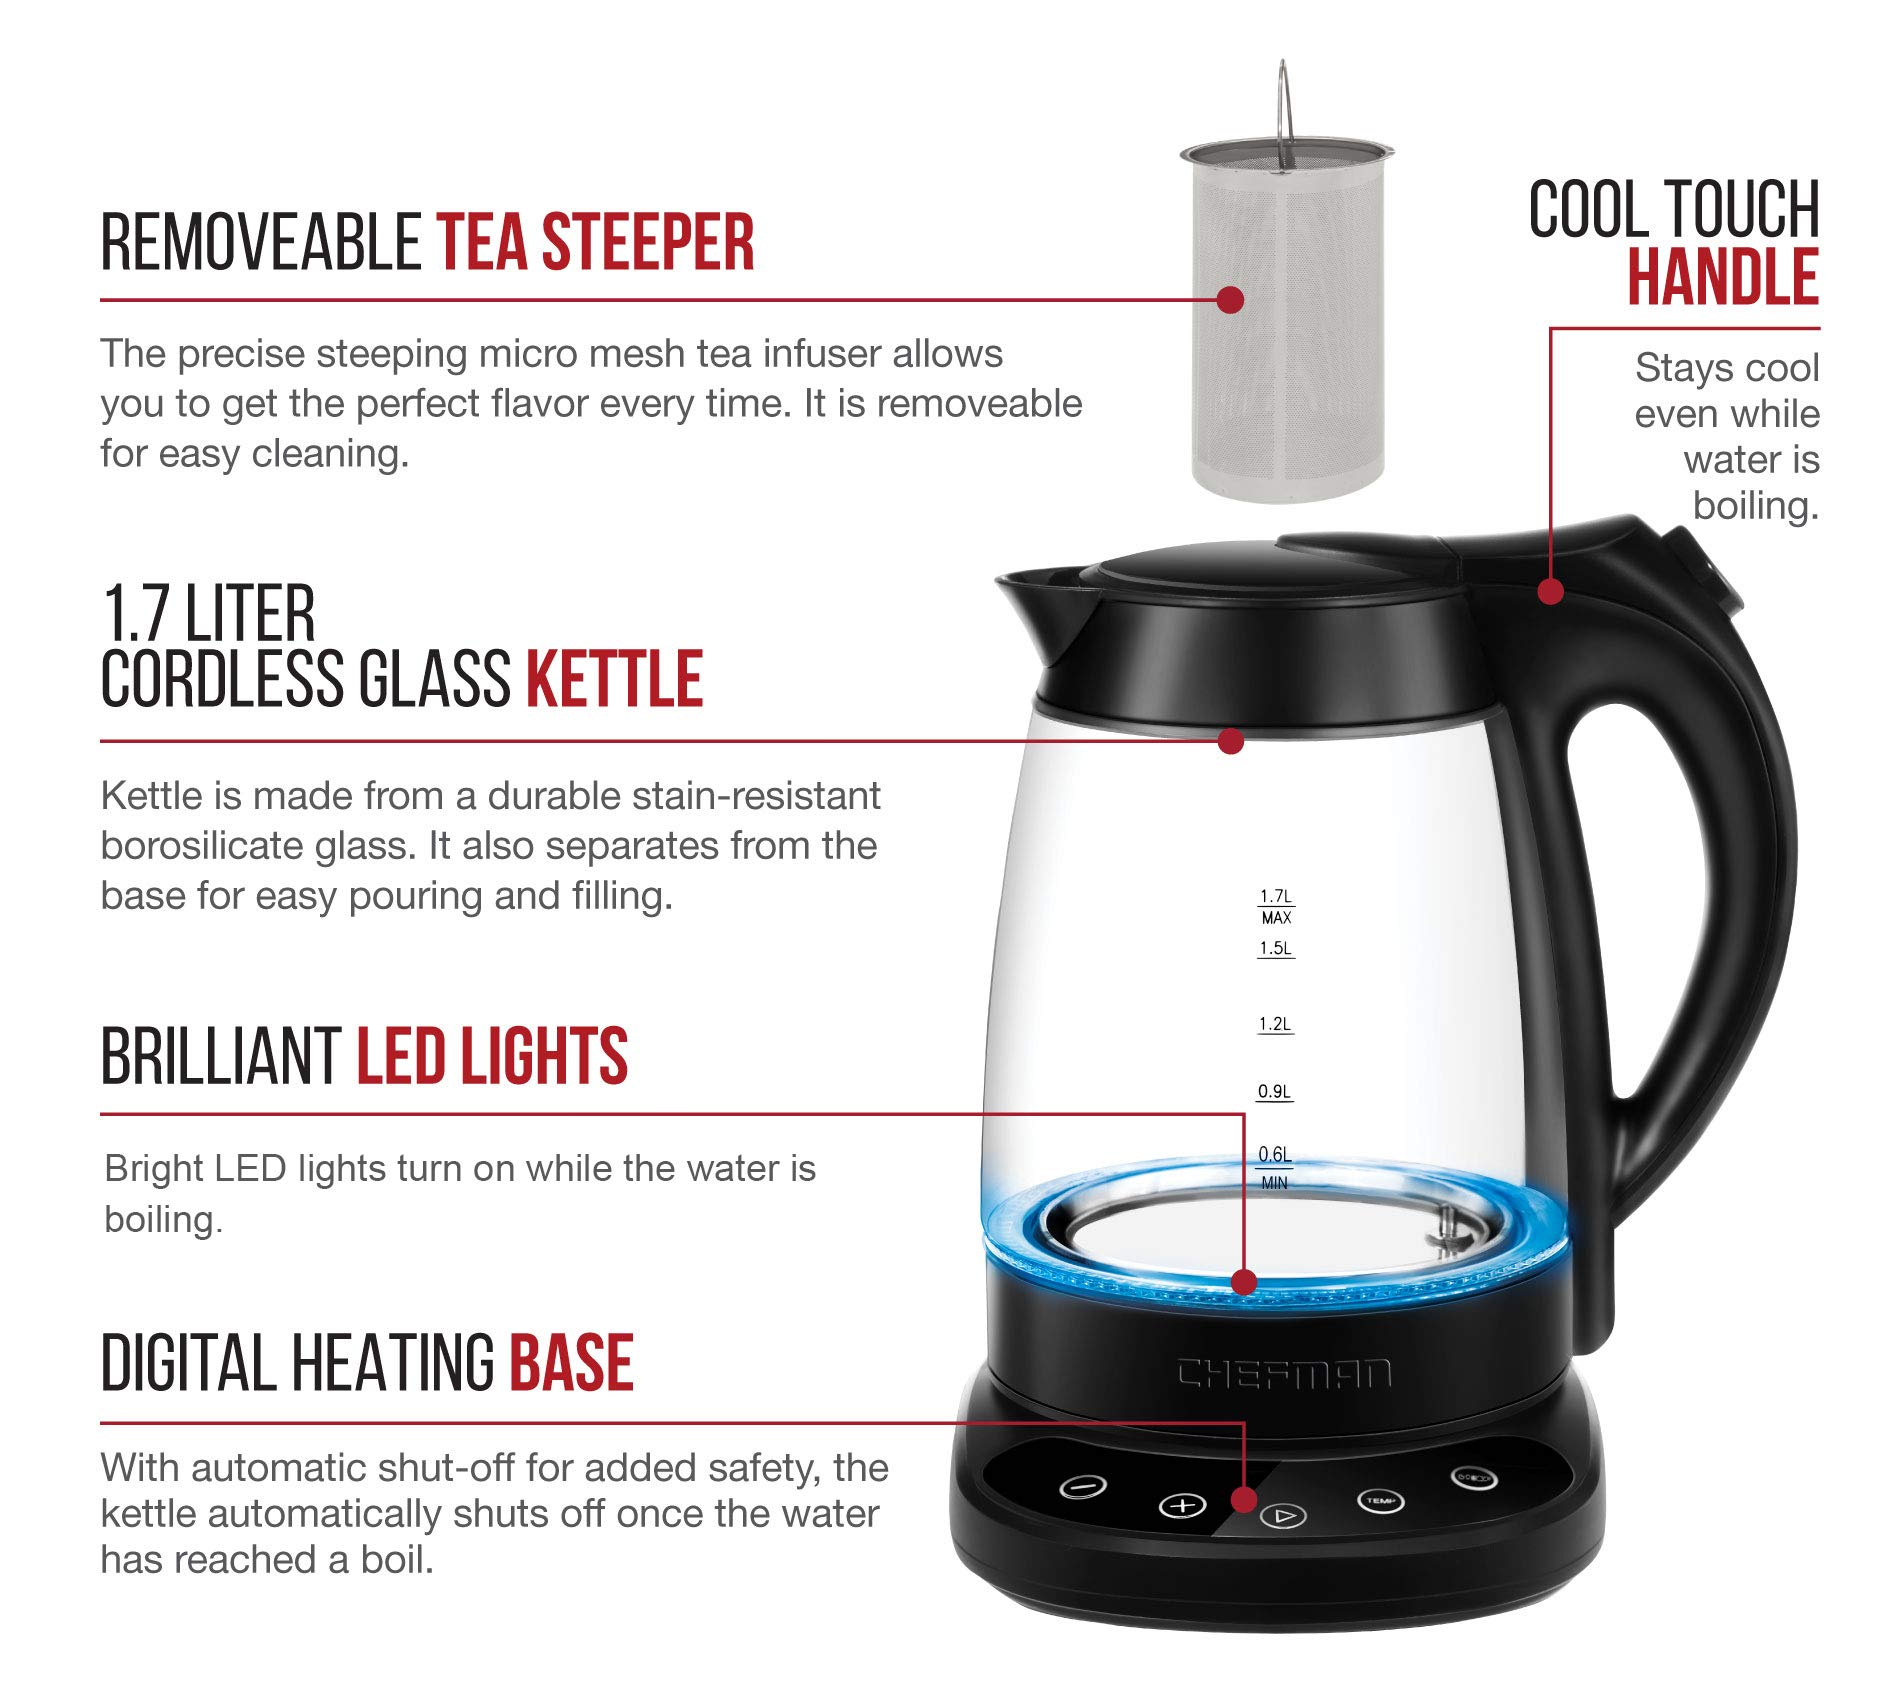 Chefman Programmable Electric Kettle Digital Display Removable Tea Infuser Included, Cool Touch Handle, 360° Swivel Base, BPA Free, 1.7 Liter/1.8 Quart by Chefman (Image #2)